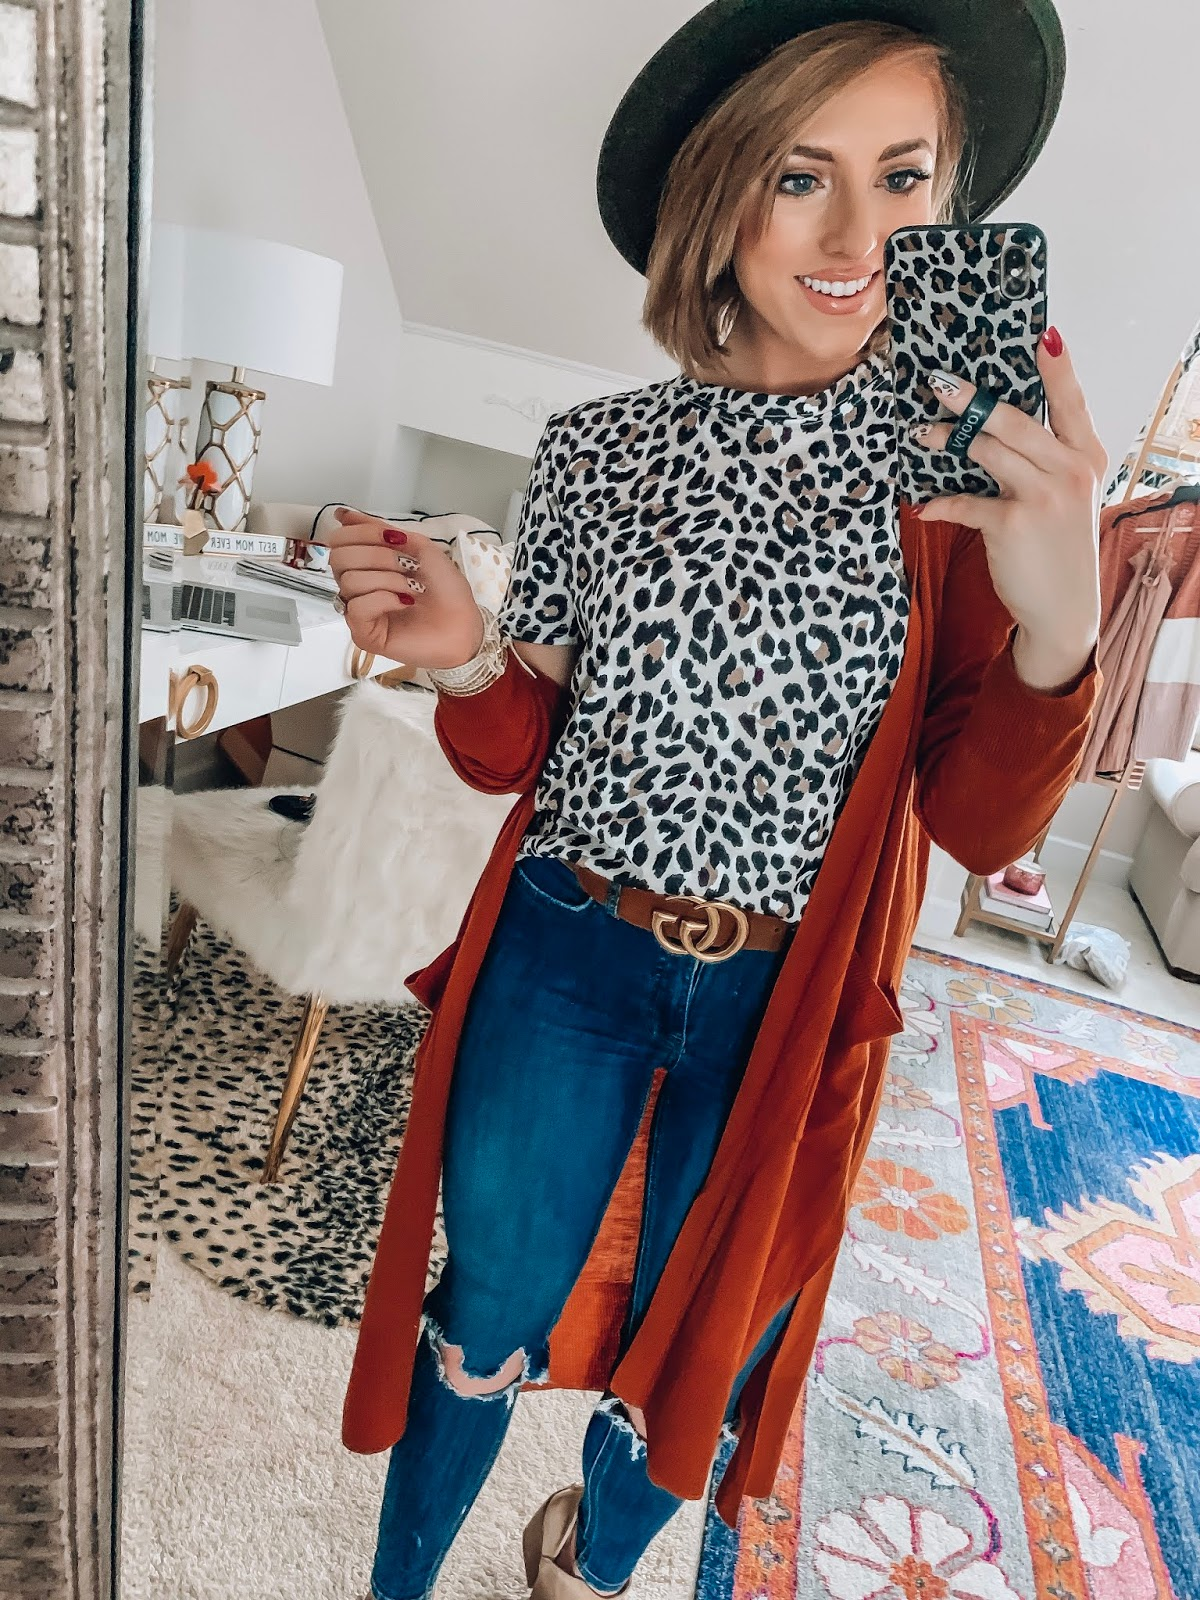 Recent Amazon Finds: $14 Leopard Tee - Something Delightful Blog #fallstyle #affordablefashion #amazonfashion